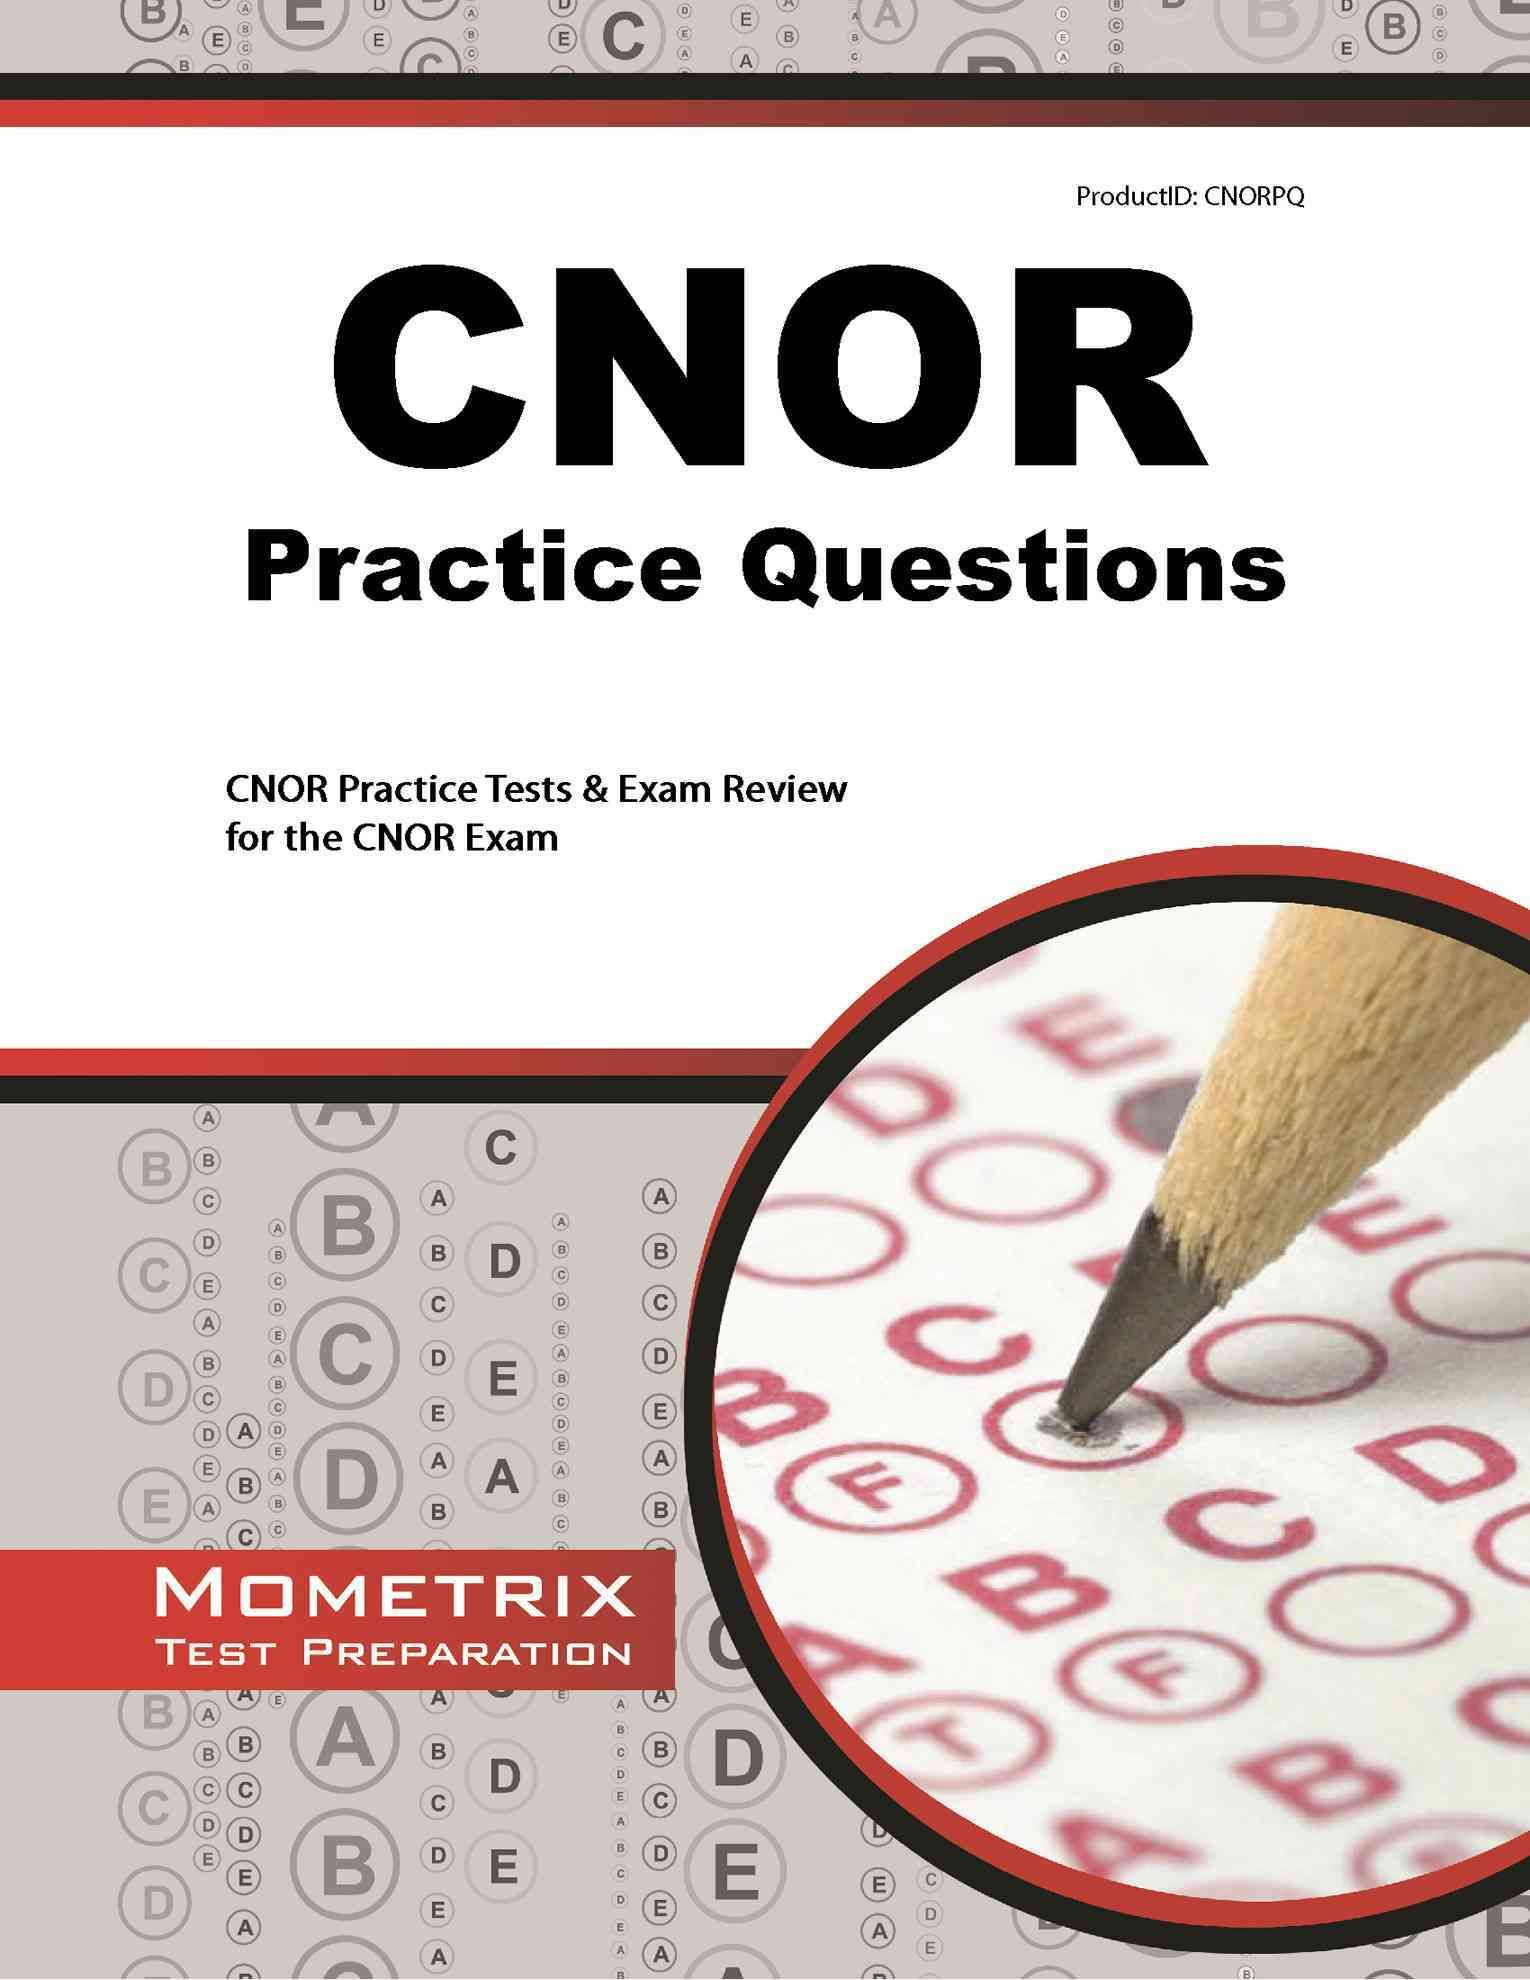 Cnor practice questions cnor pinterest cna practice tests are best means to help nursing aide students pass the real cna certification exam the first attempt xflitez Image collections